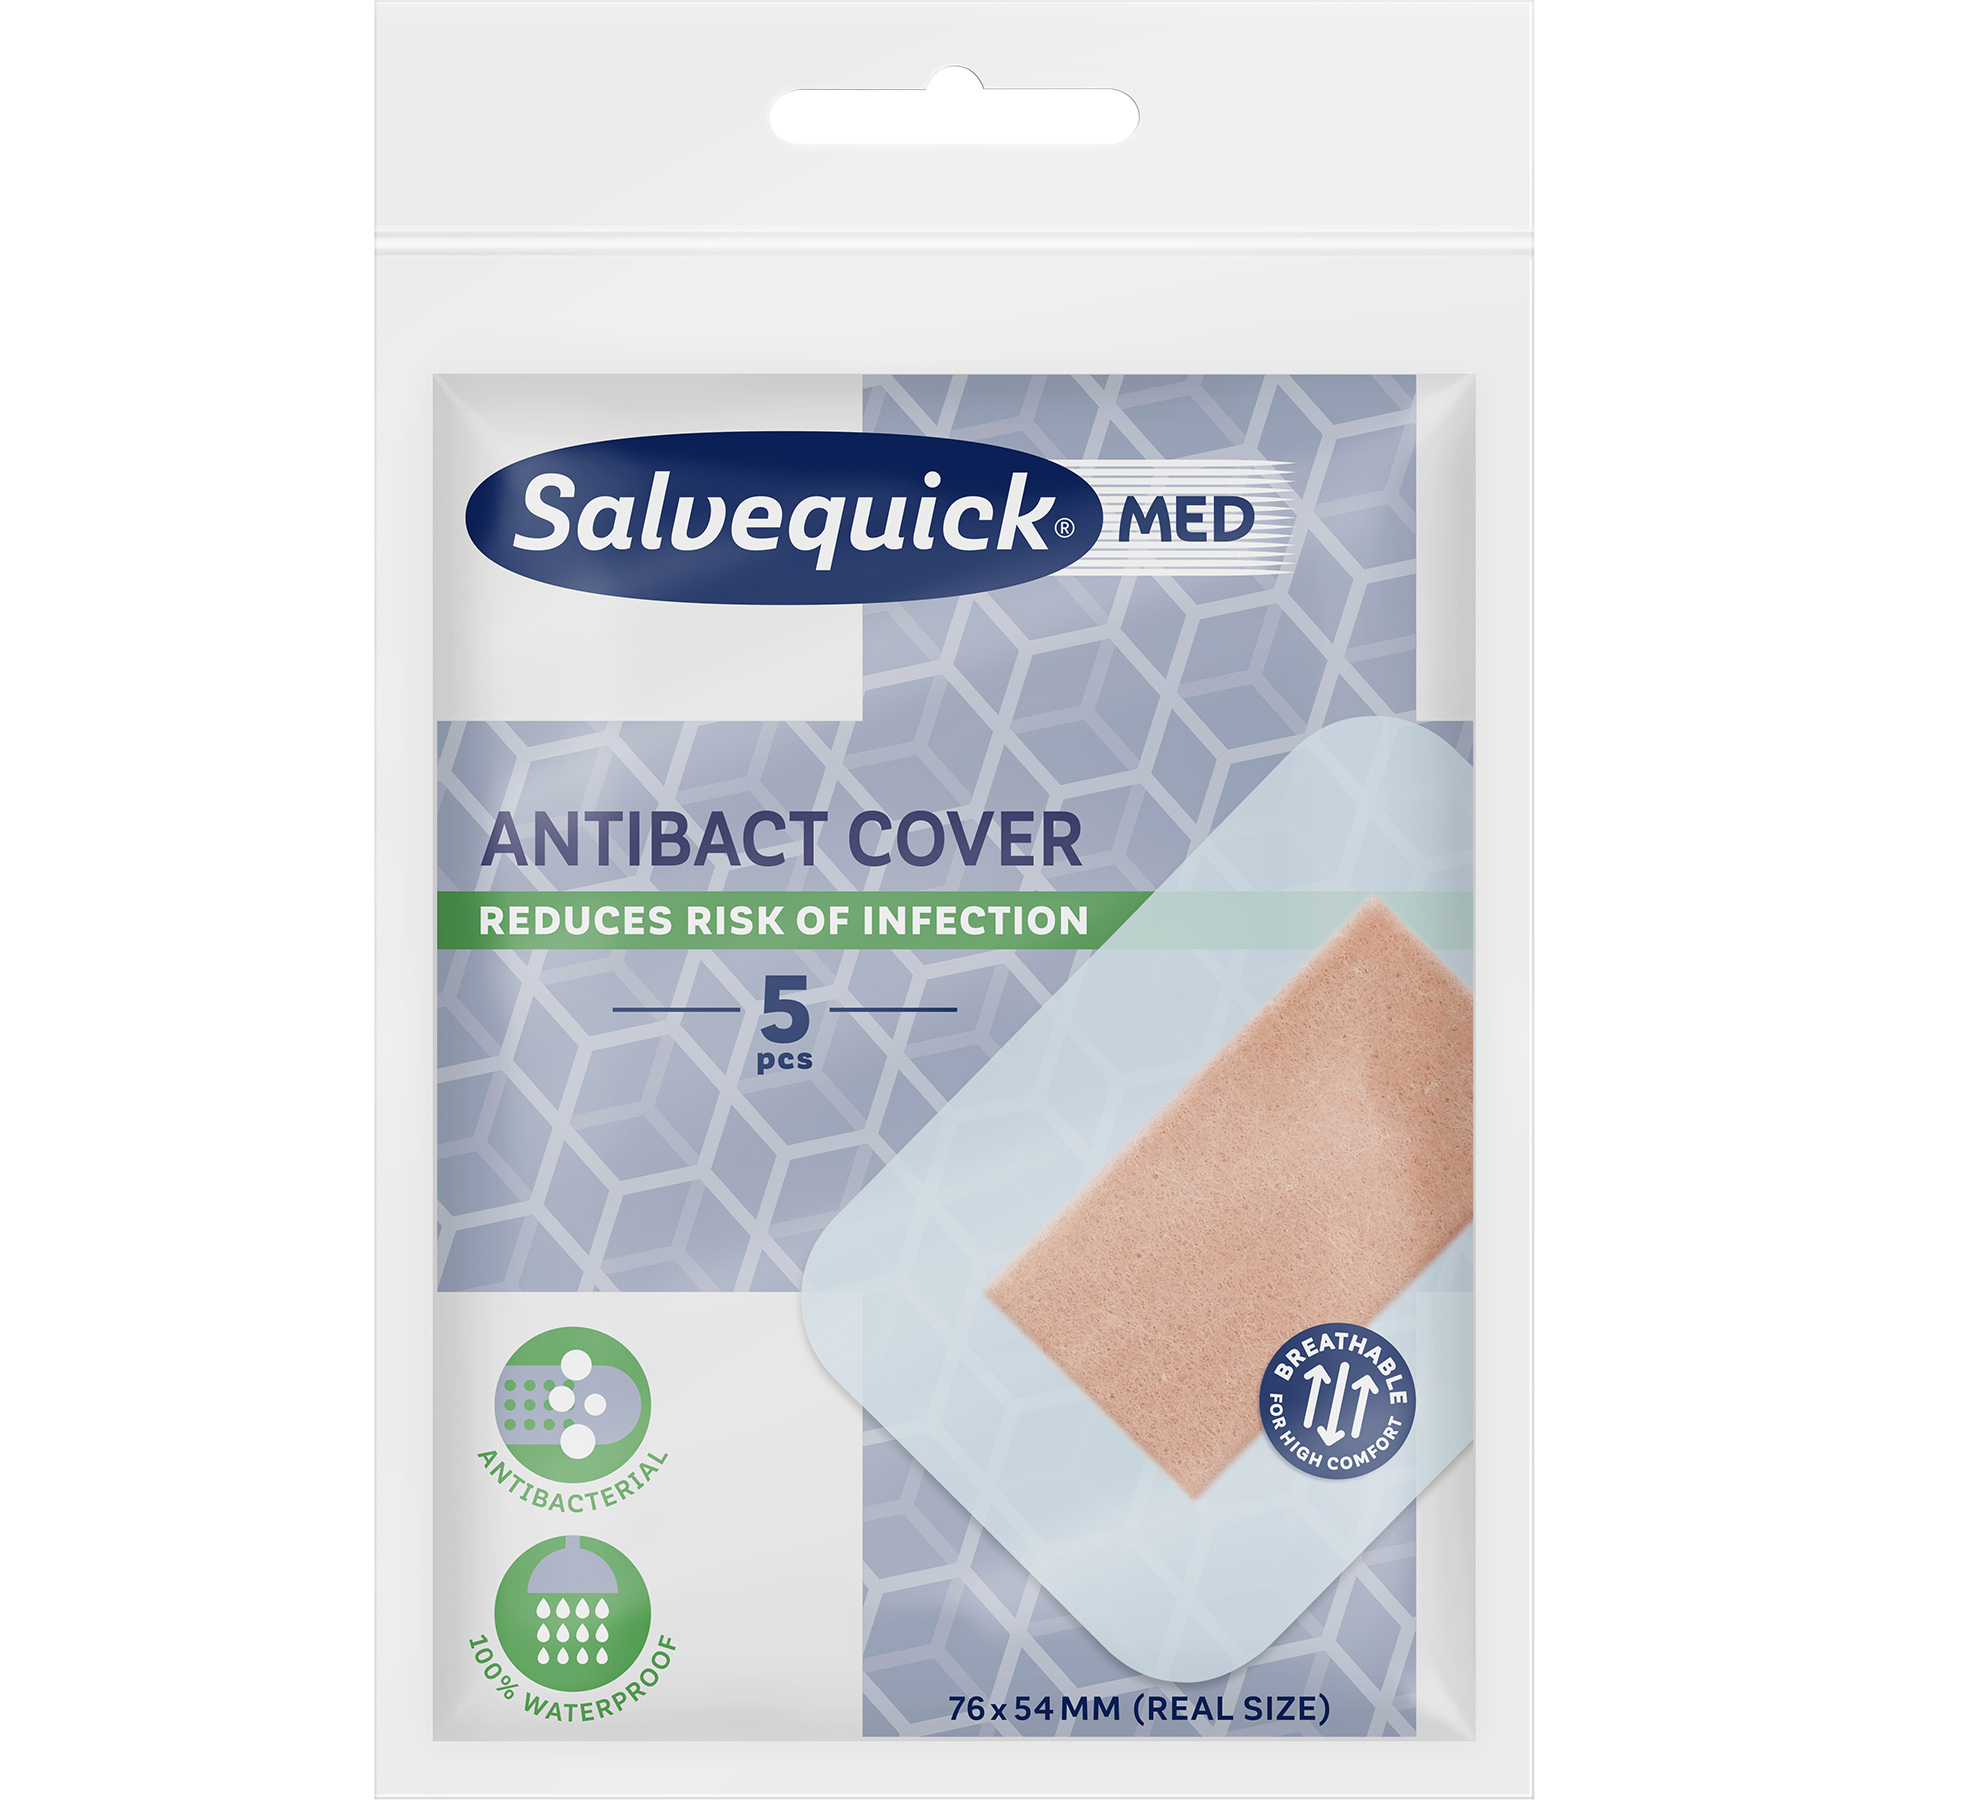 Salvequick Med Antibact Cover